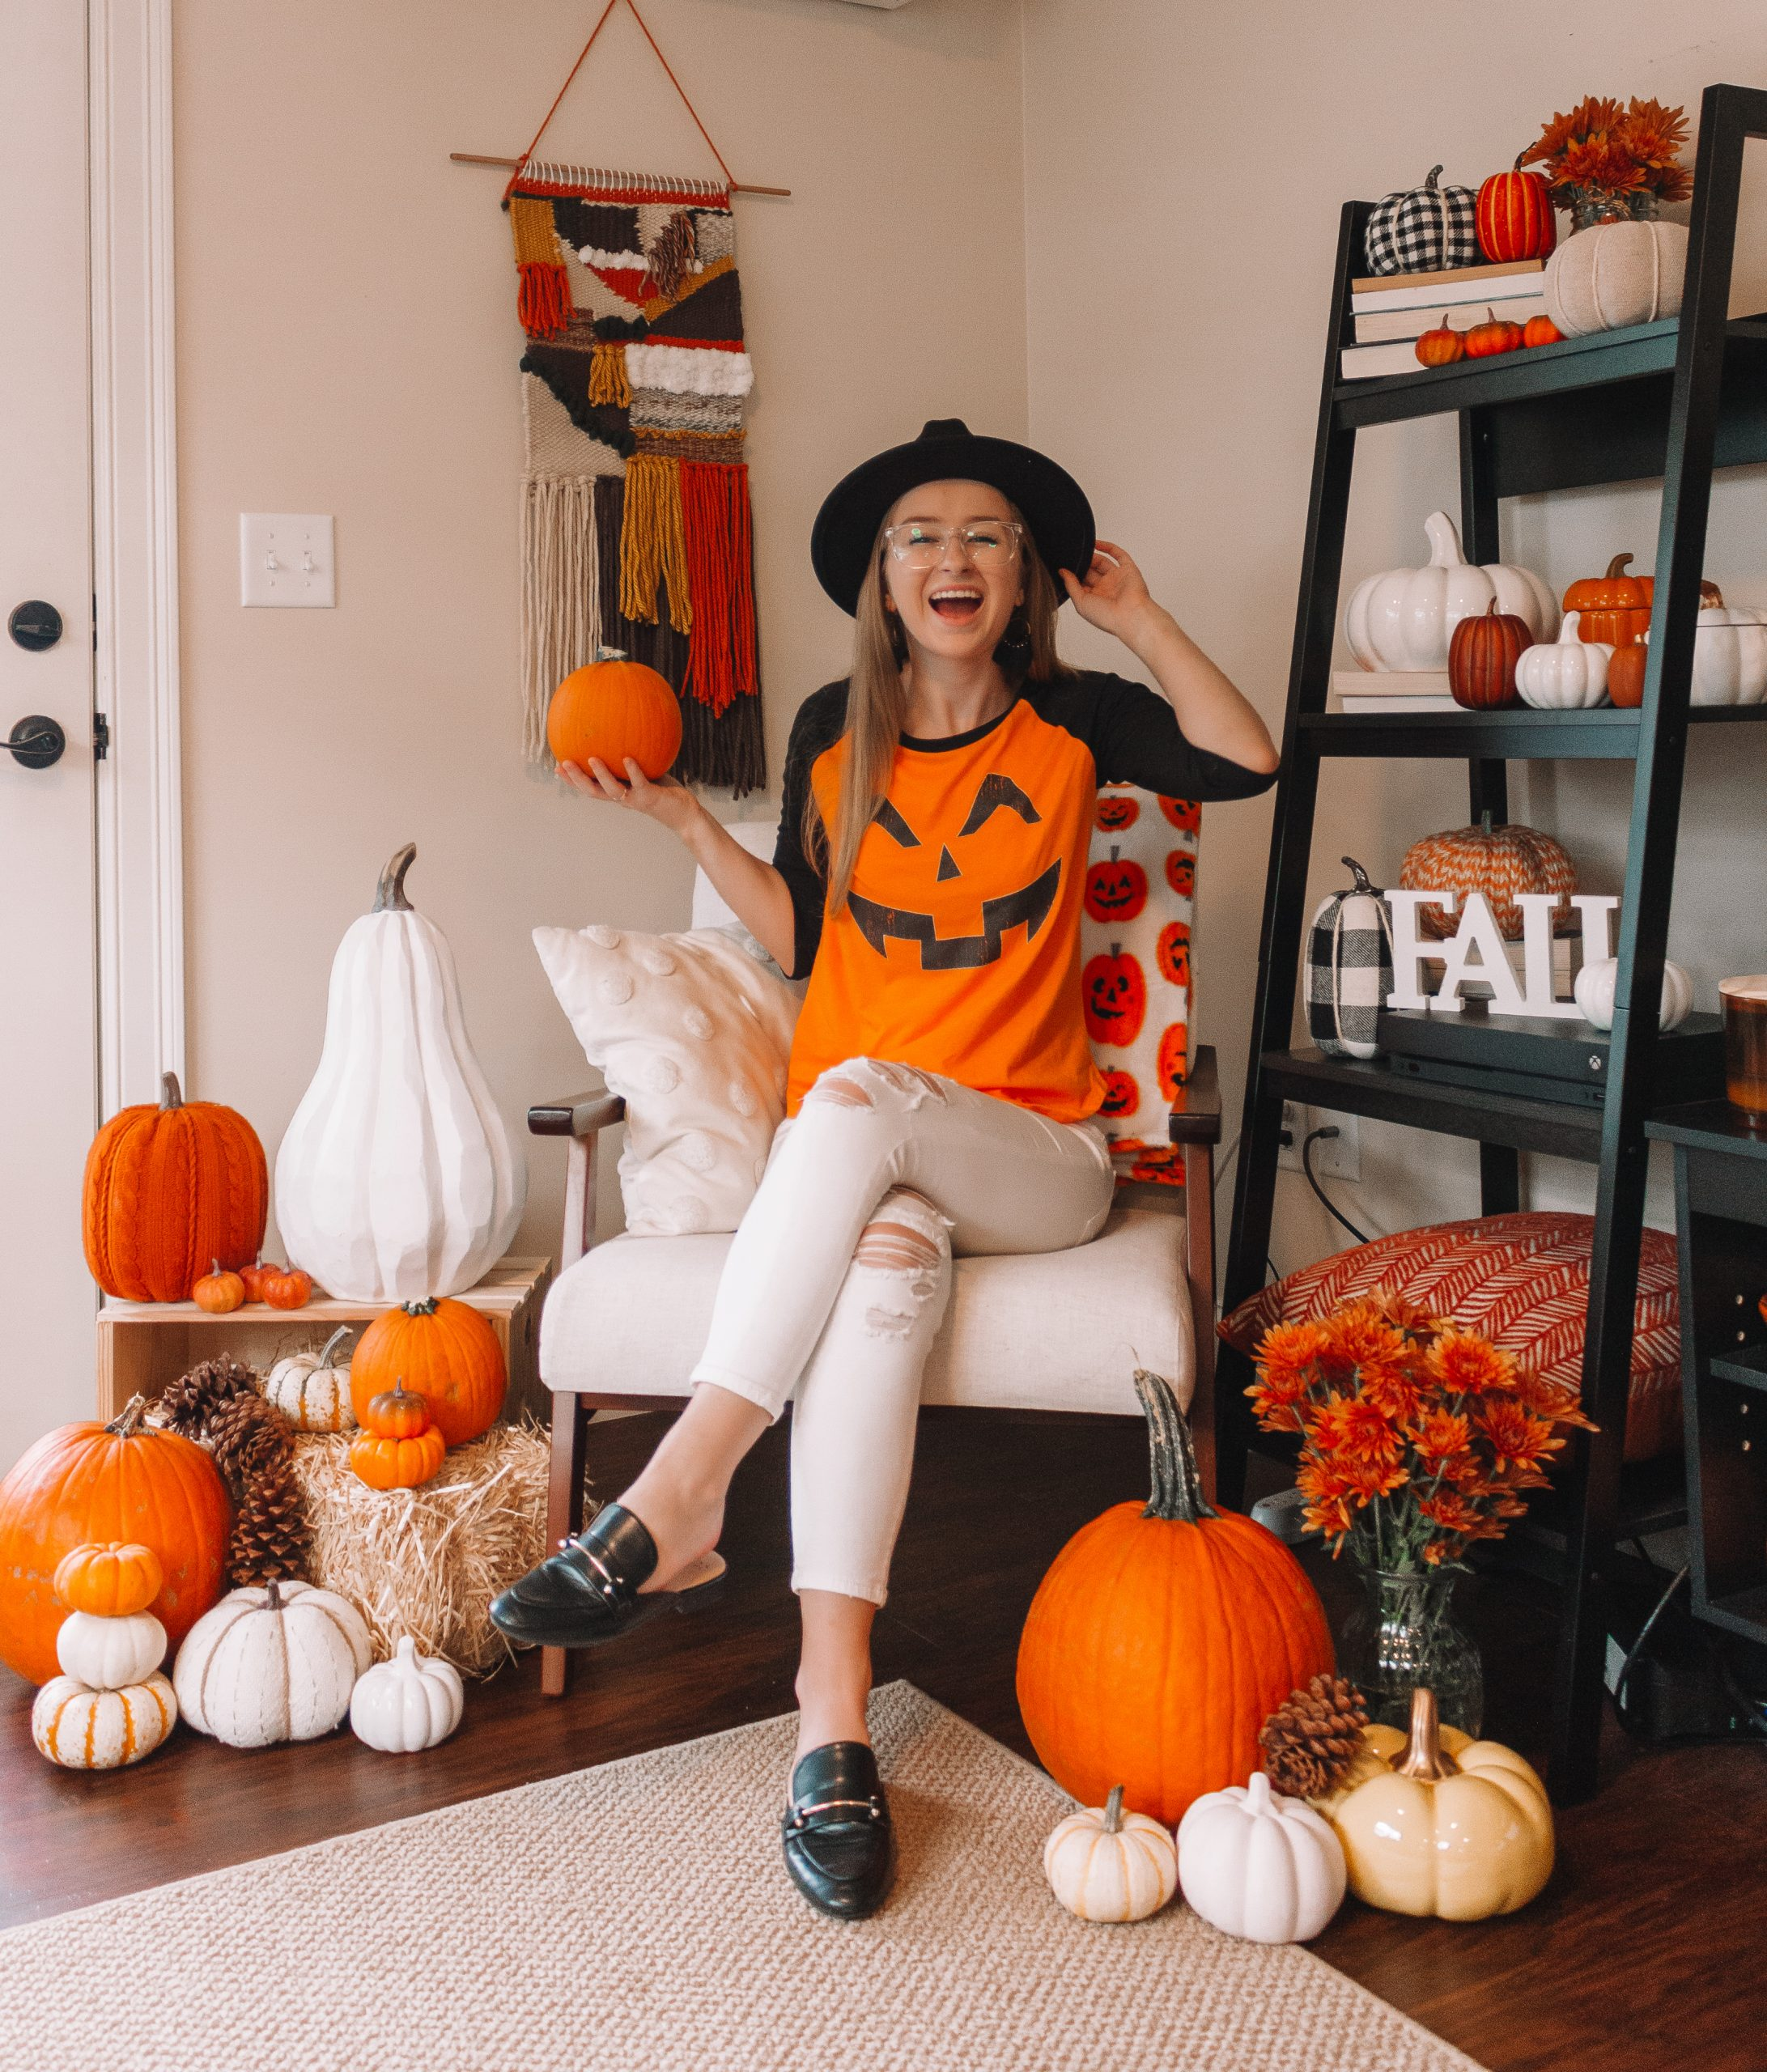 Friday Top Five Edit: Fall & Halloween Graphic Tees | Hey Its Camille Grey #fashion #fall #halloween #graphictees #pumpkins #autumn